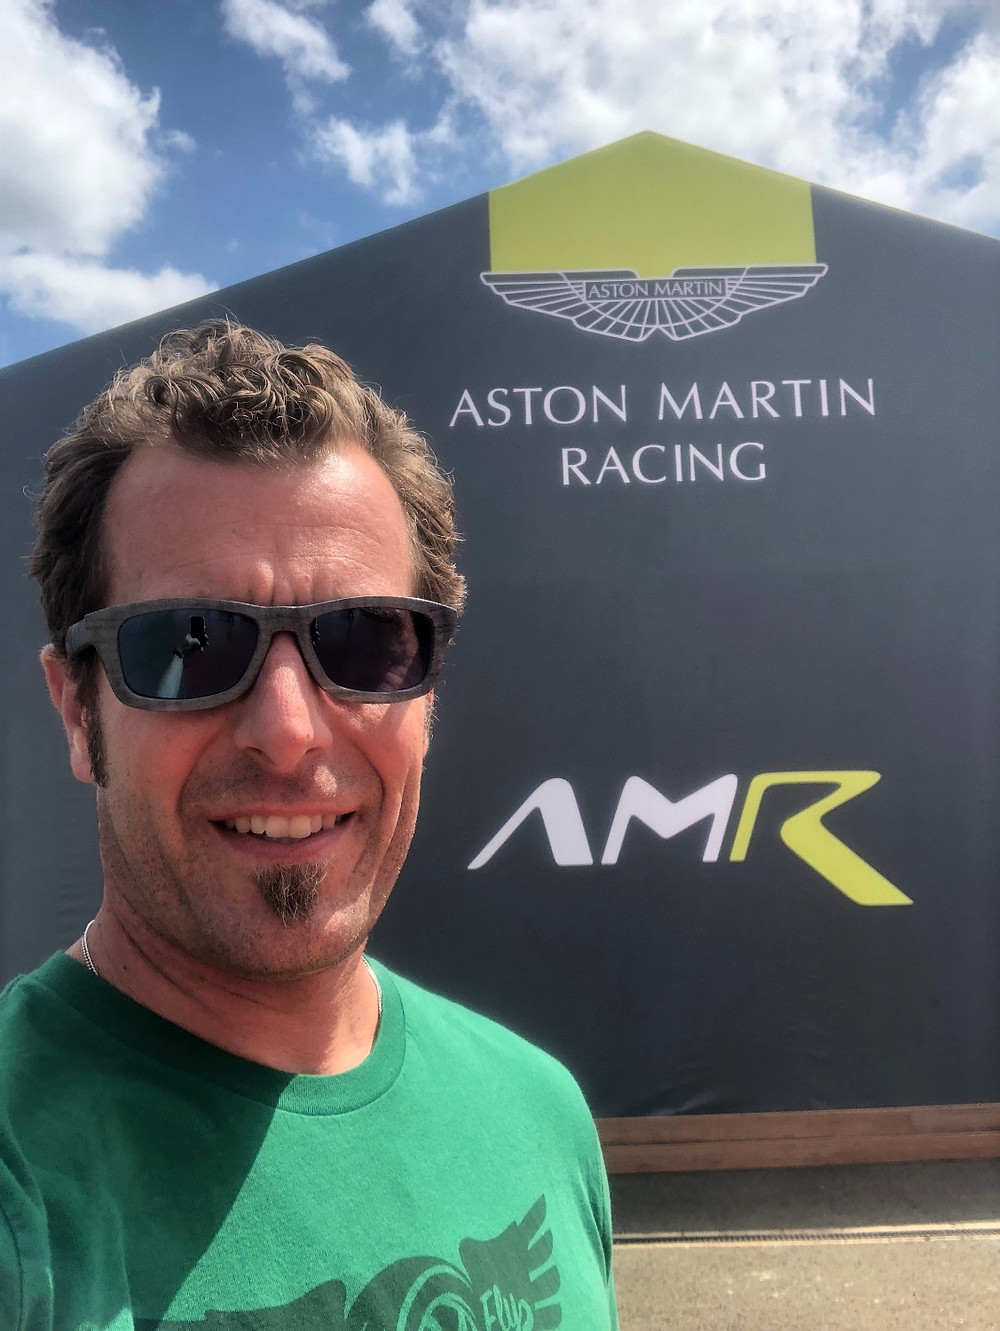 Derek in LeMans visiting Aston Martin Racing